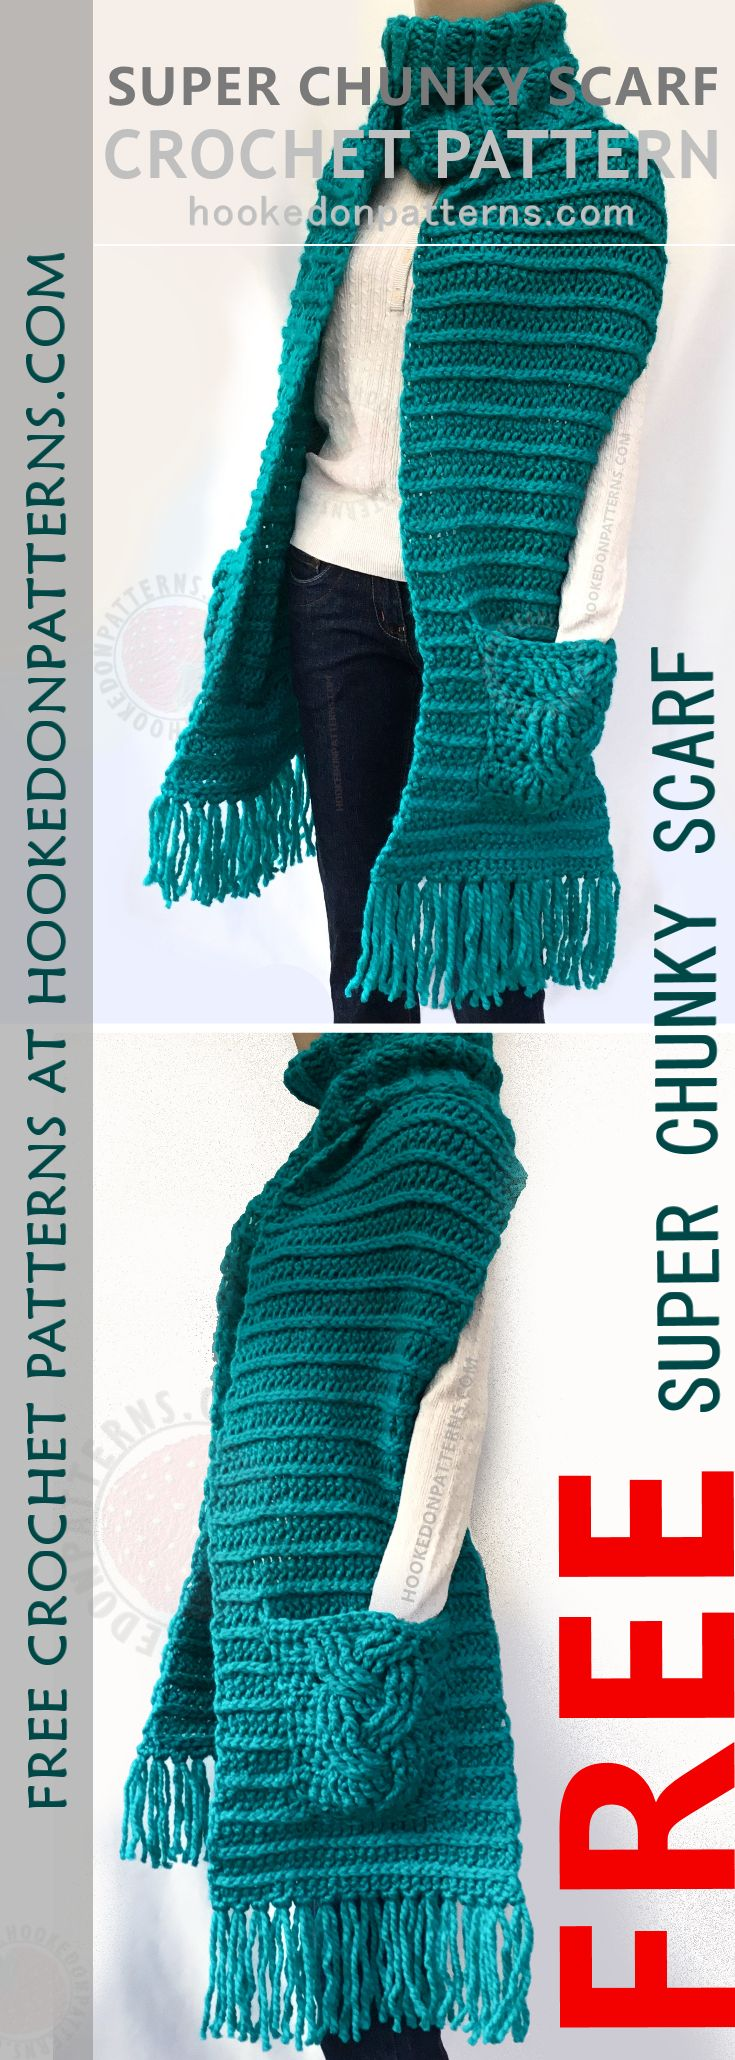 Free Crochet Pattern for a Super Chunky Scarf with Pockets | Tejido ...